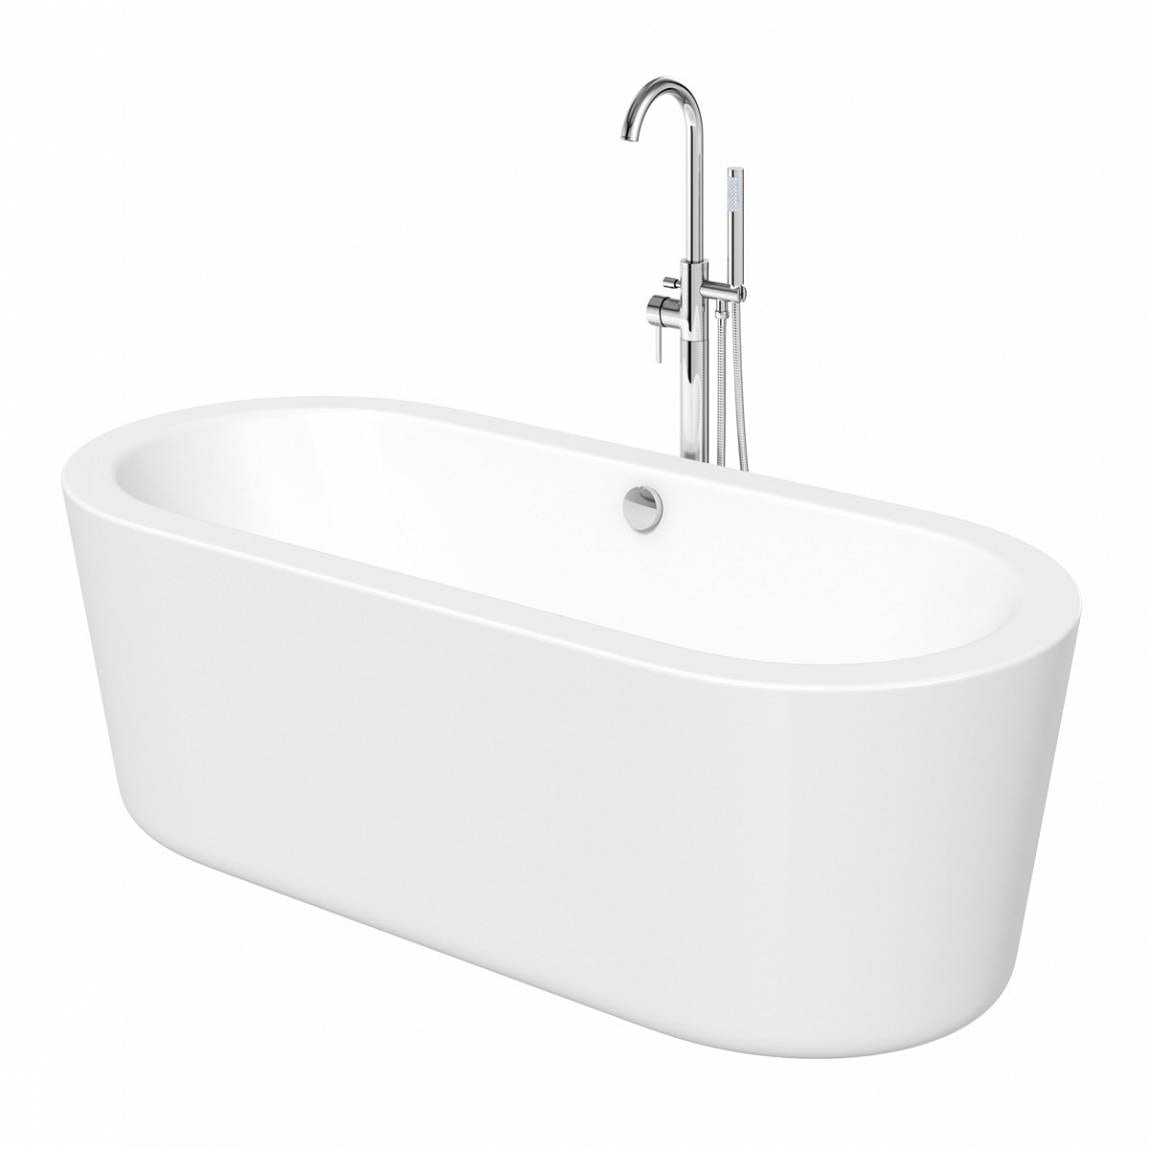 Orchard Wharfe freestanding bath offer pack 1565 x 740